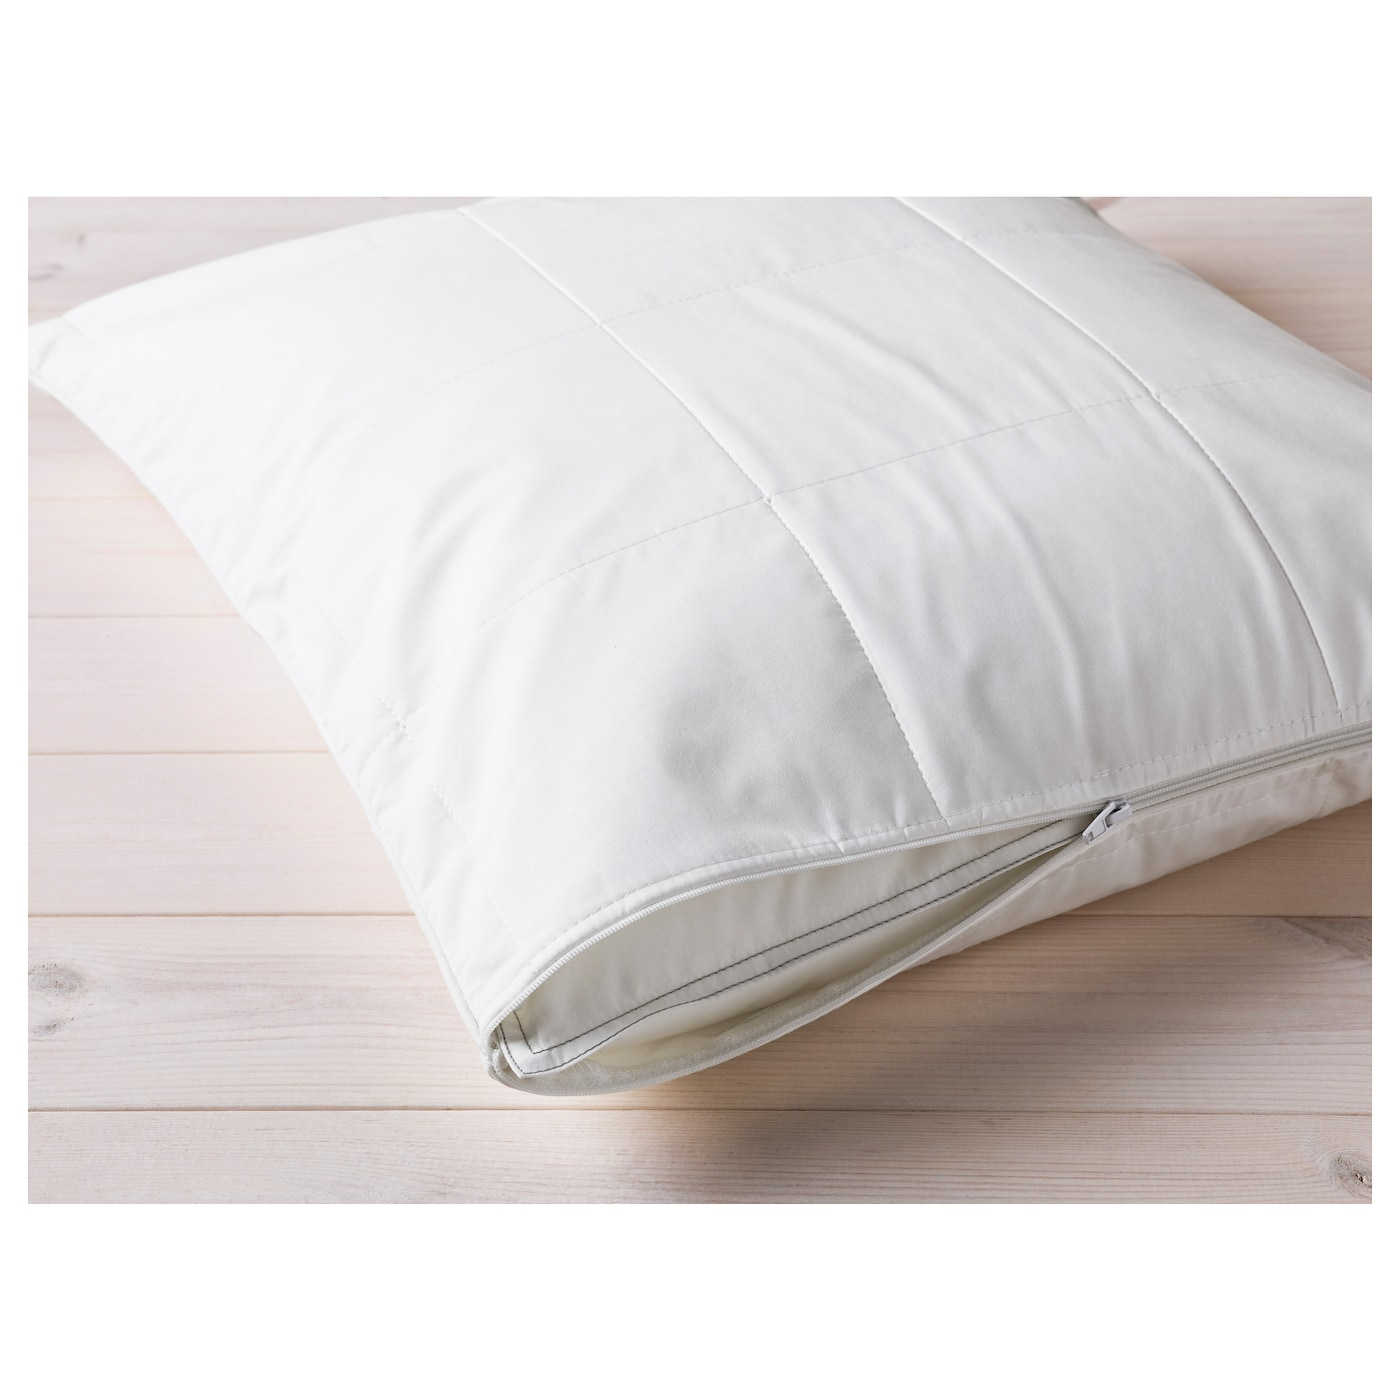 IKEA KUNGSMYNTA pillow protector Protects from stains and dirt and prolongs the life of your pillow.